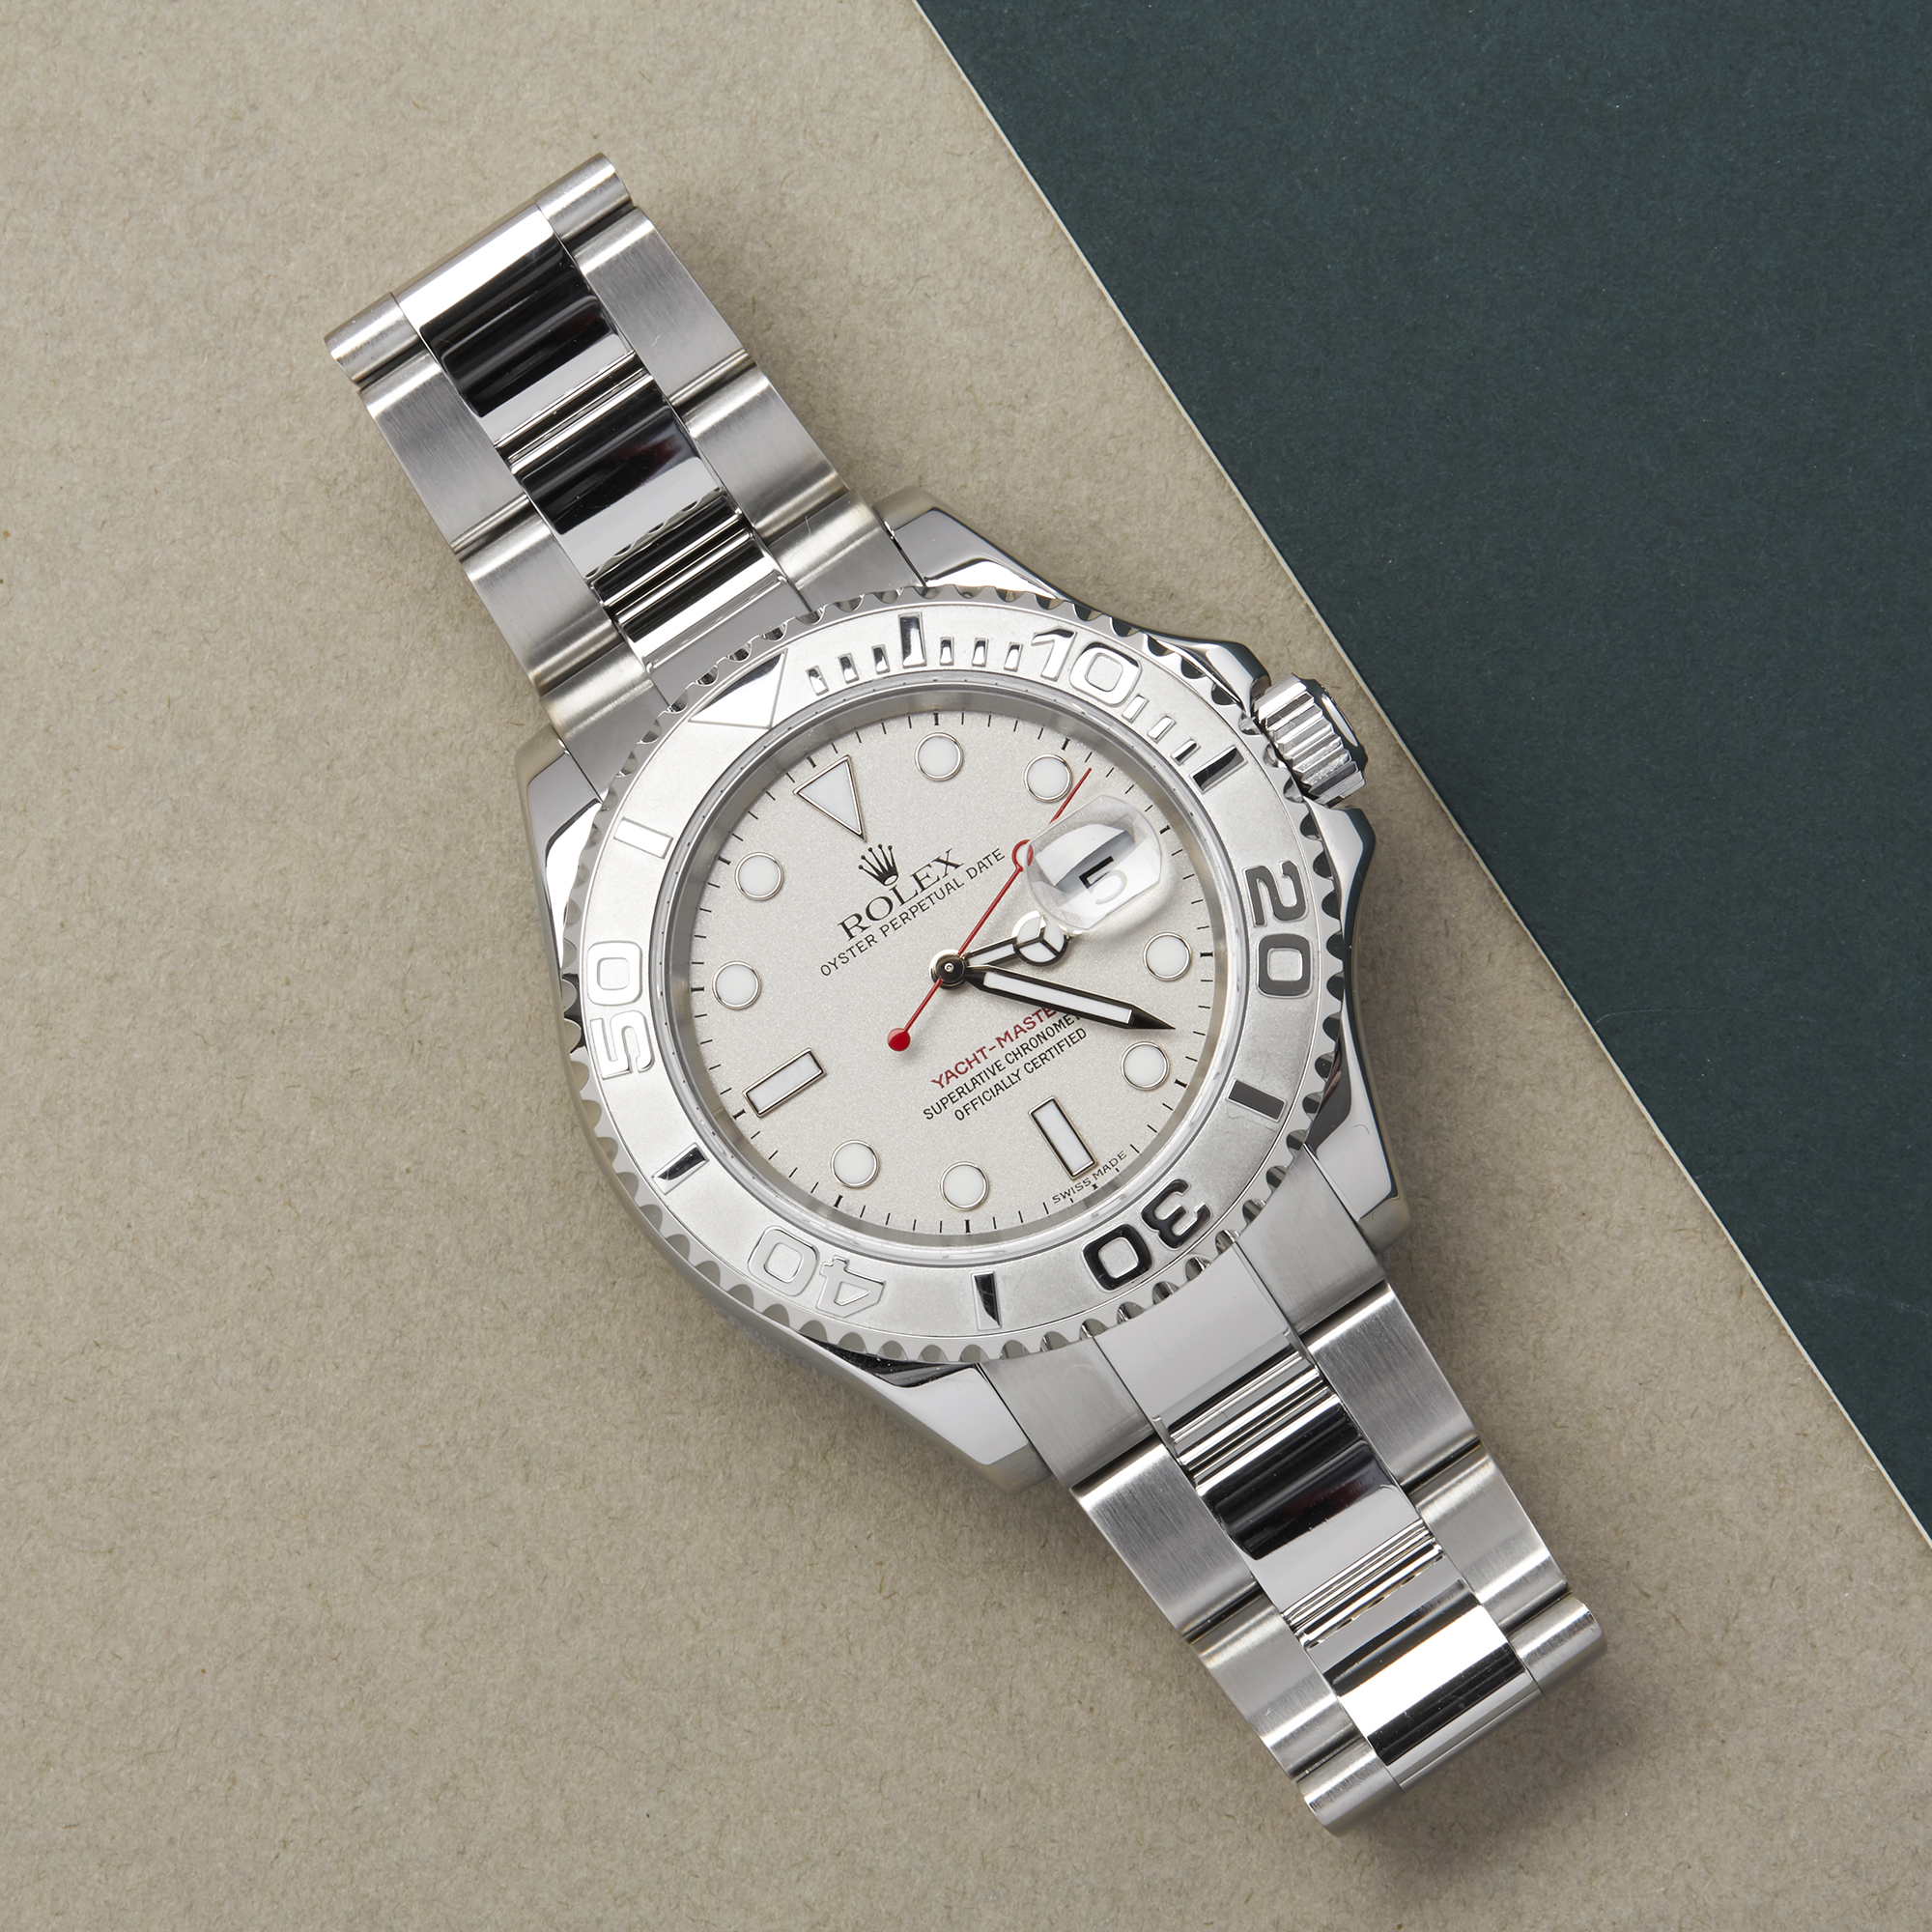 Rolex Yacht-Master 40 16622 Men's Stainless Steel Watch - Image 9 of 10